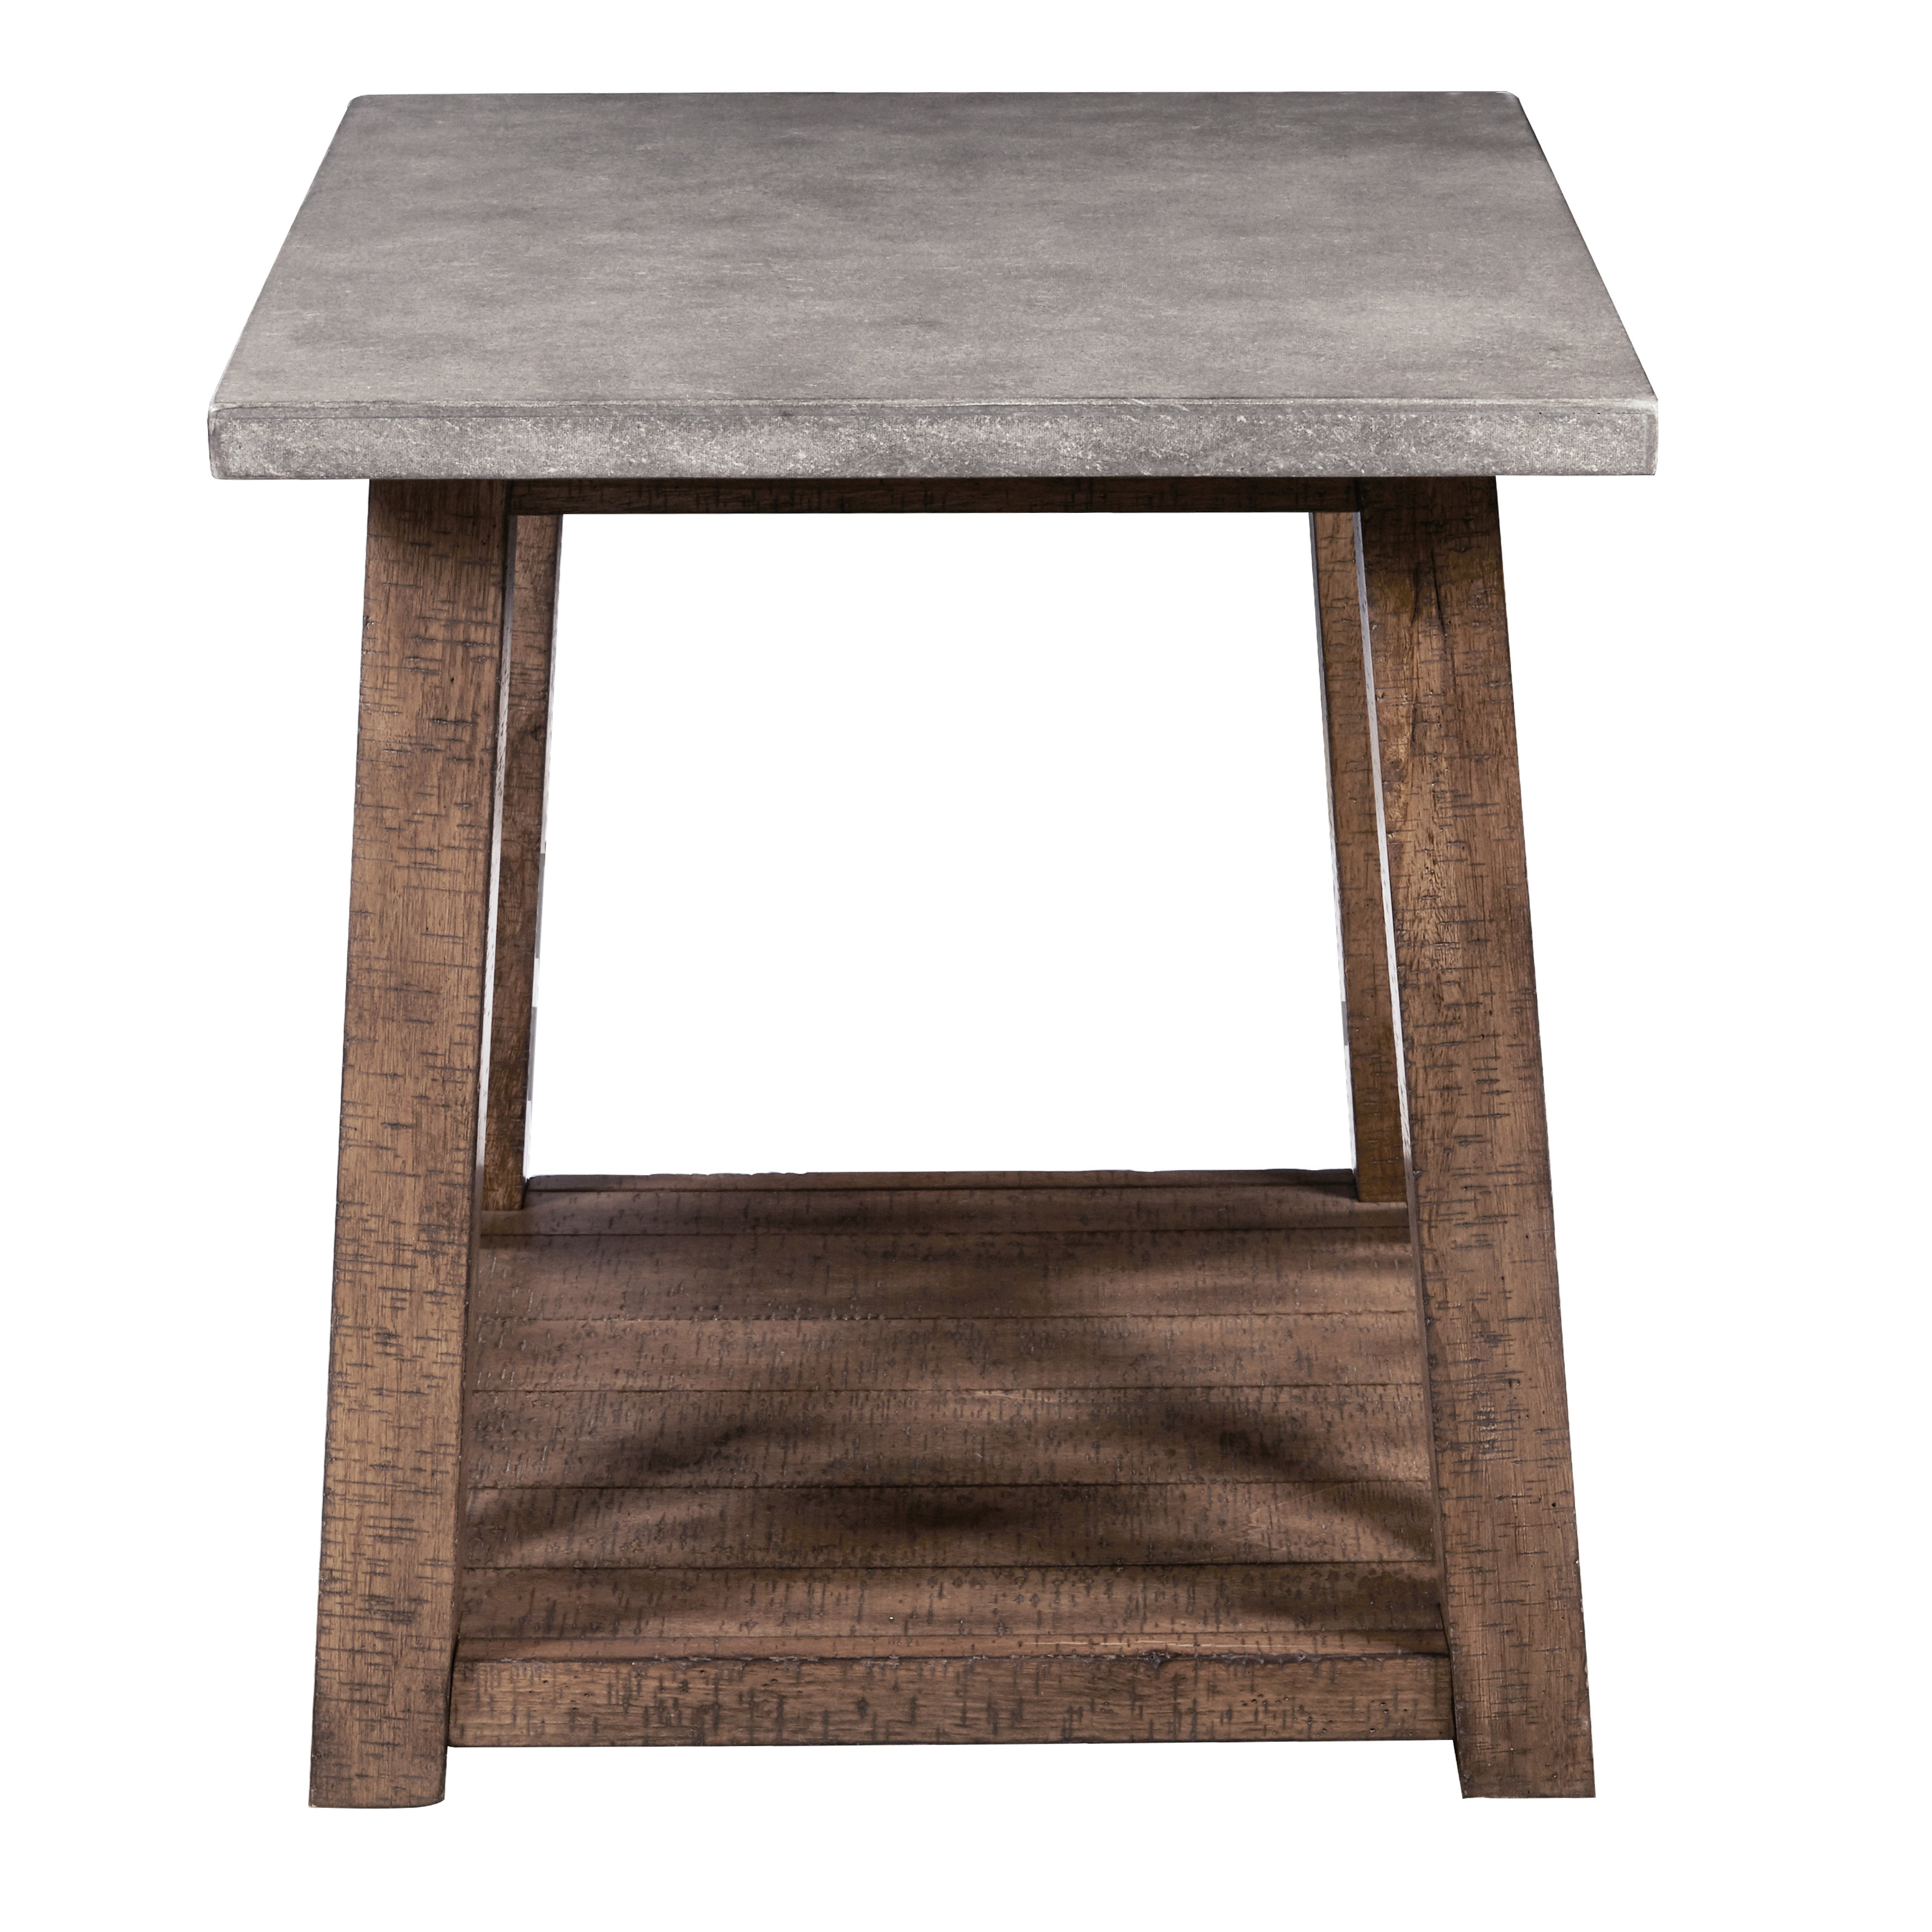 end table with stone top ayers storage wood slab accent pier one dining furniture round outdoor sofa tray low contemporary coffee tables linen cloth ethan allen console ikea ideas